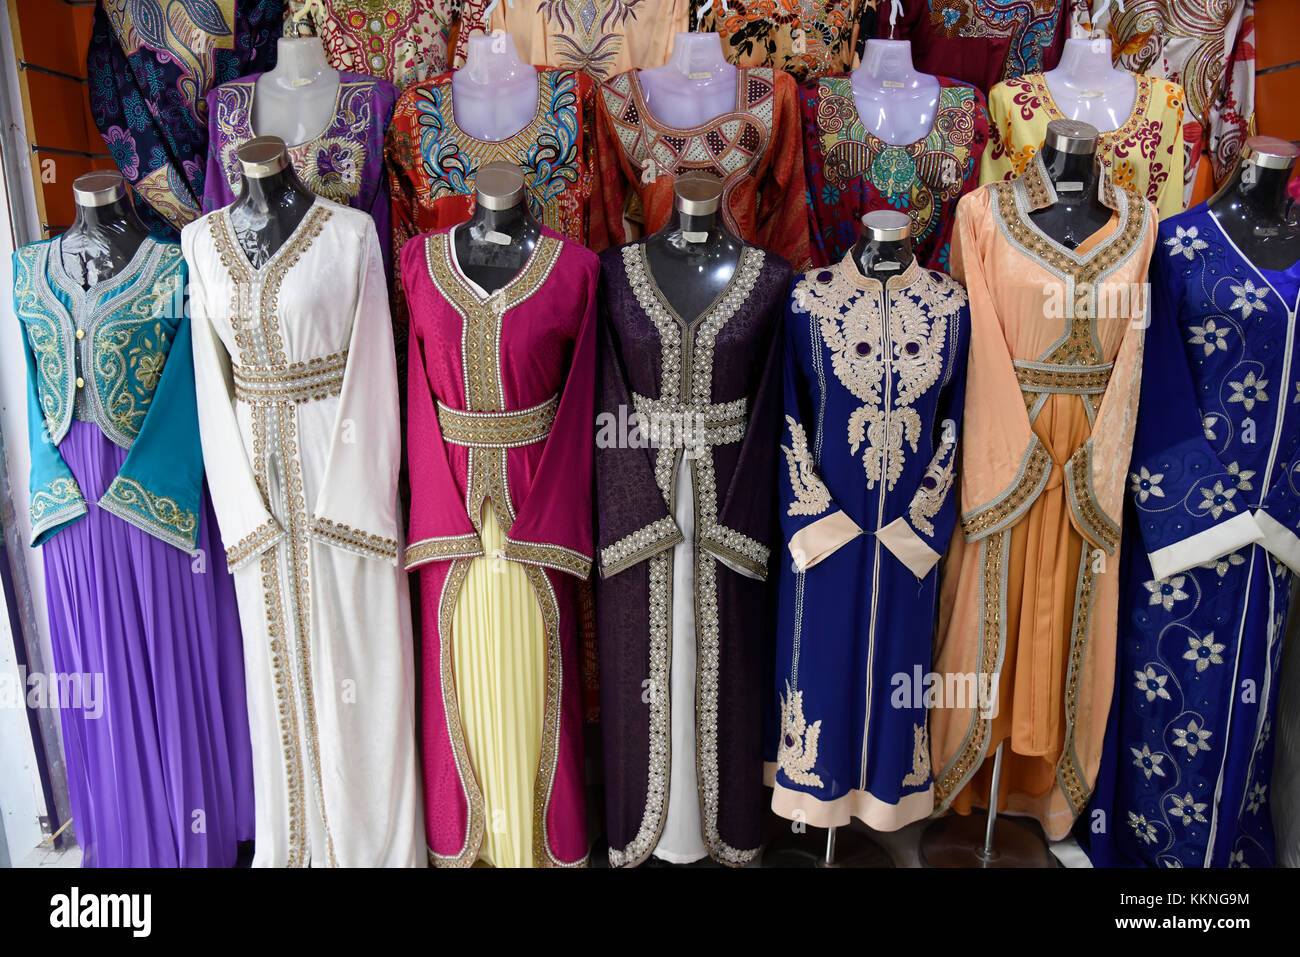 Oman Sur Traditional garments on sale at the Ladies' souk - Stock Image